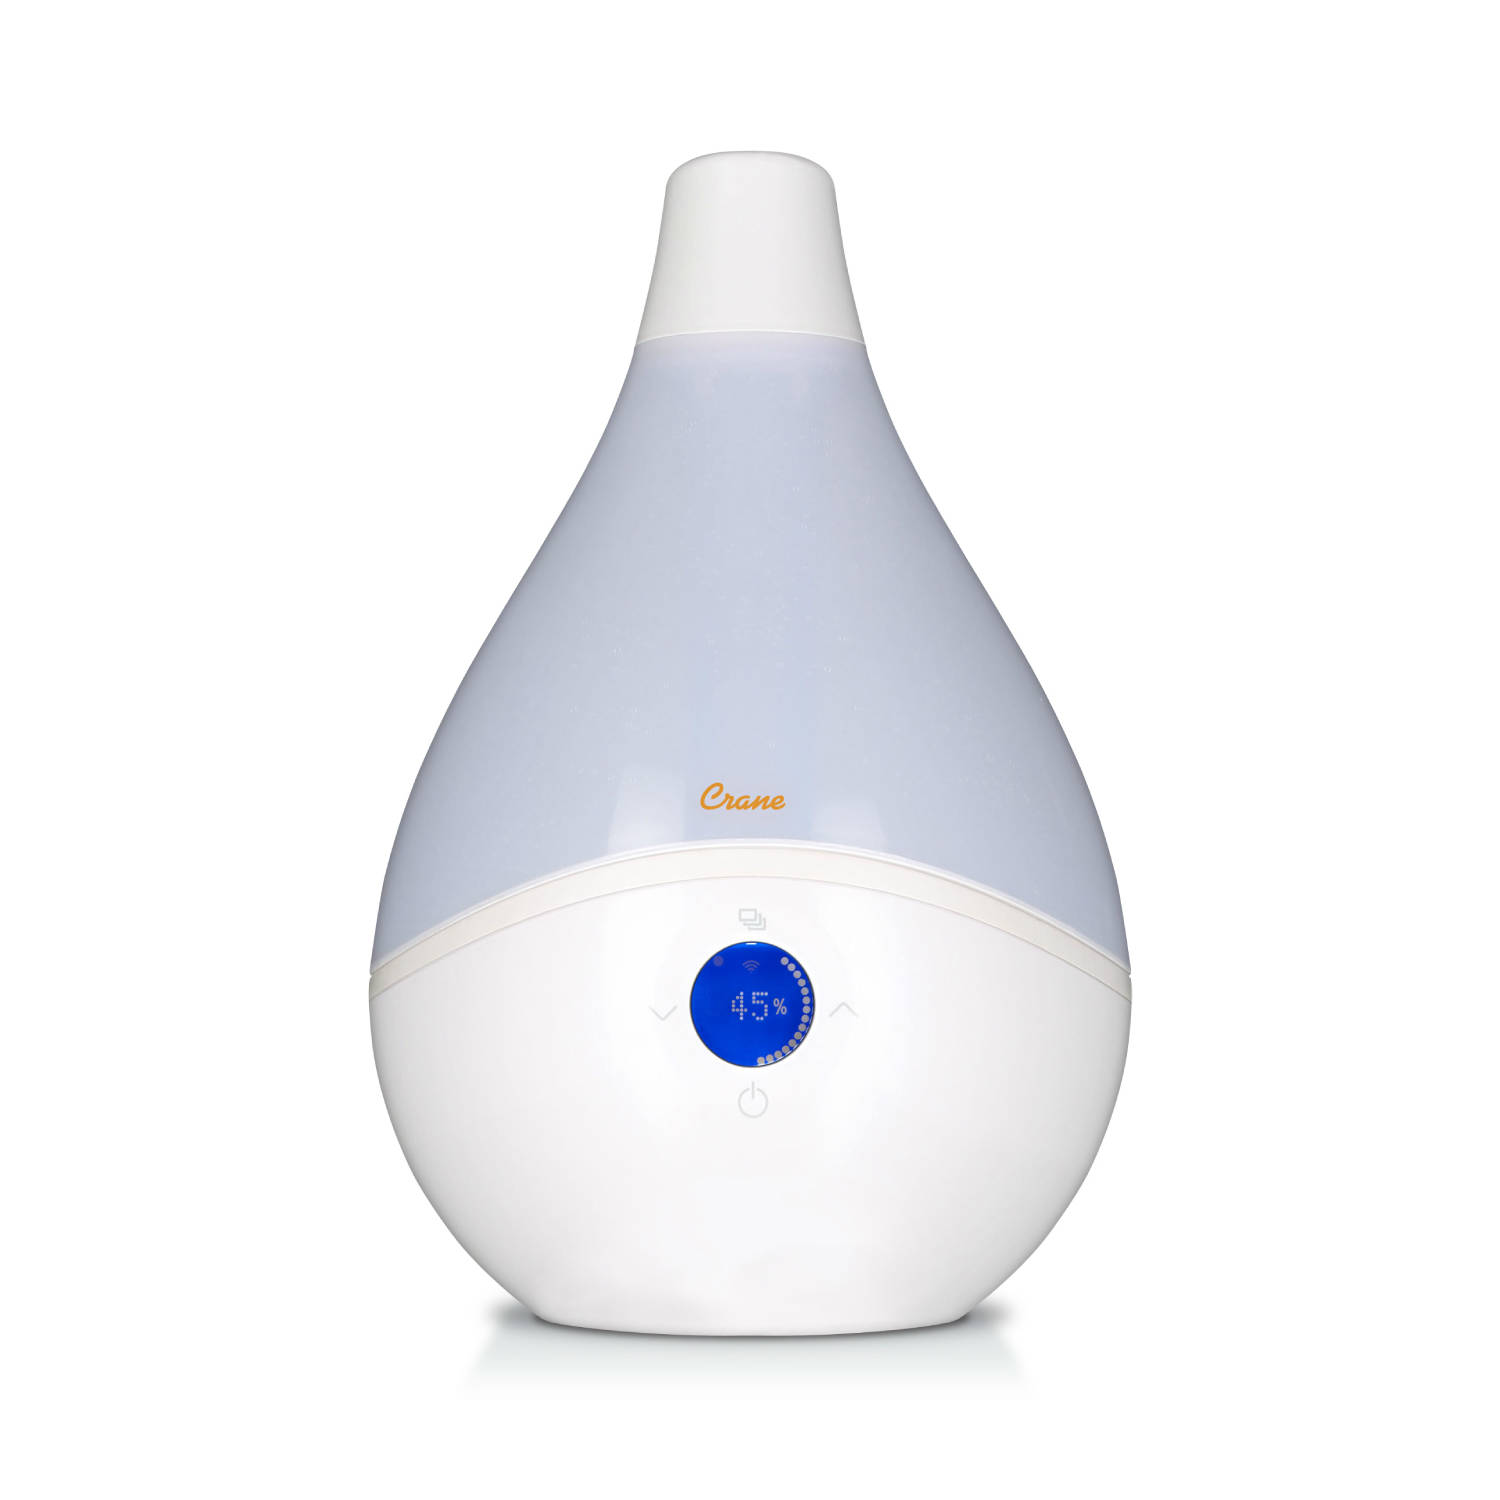 Crane Clean Control Warm & Cool Mist Digital Humidifier Walmart.com #0536C6